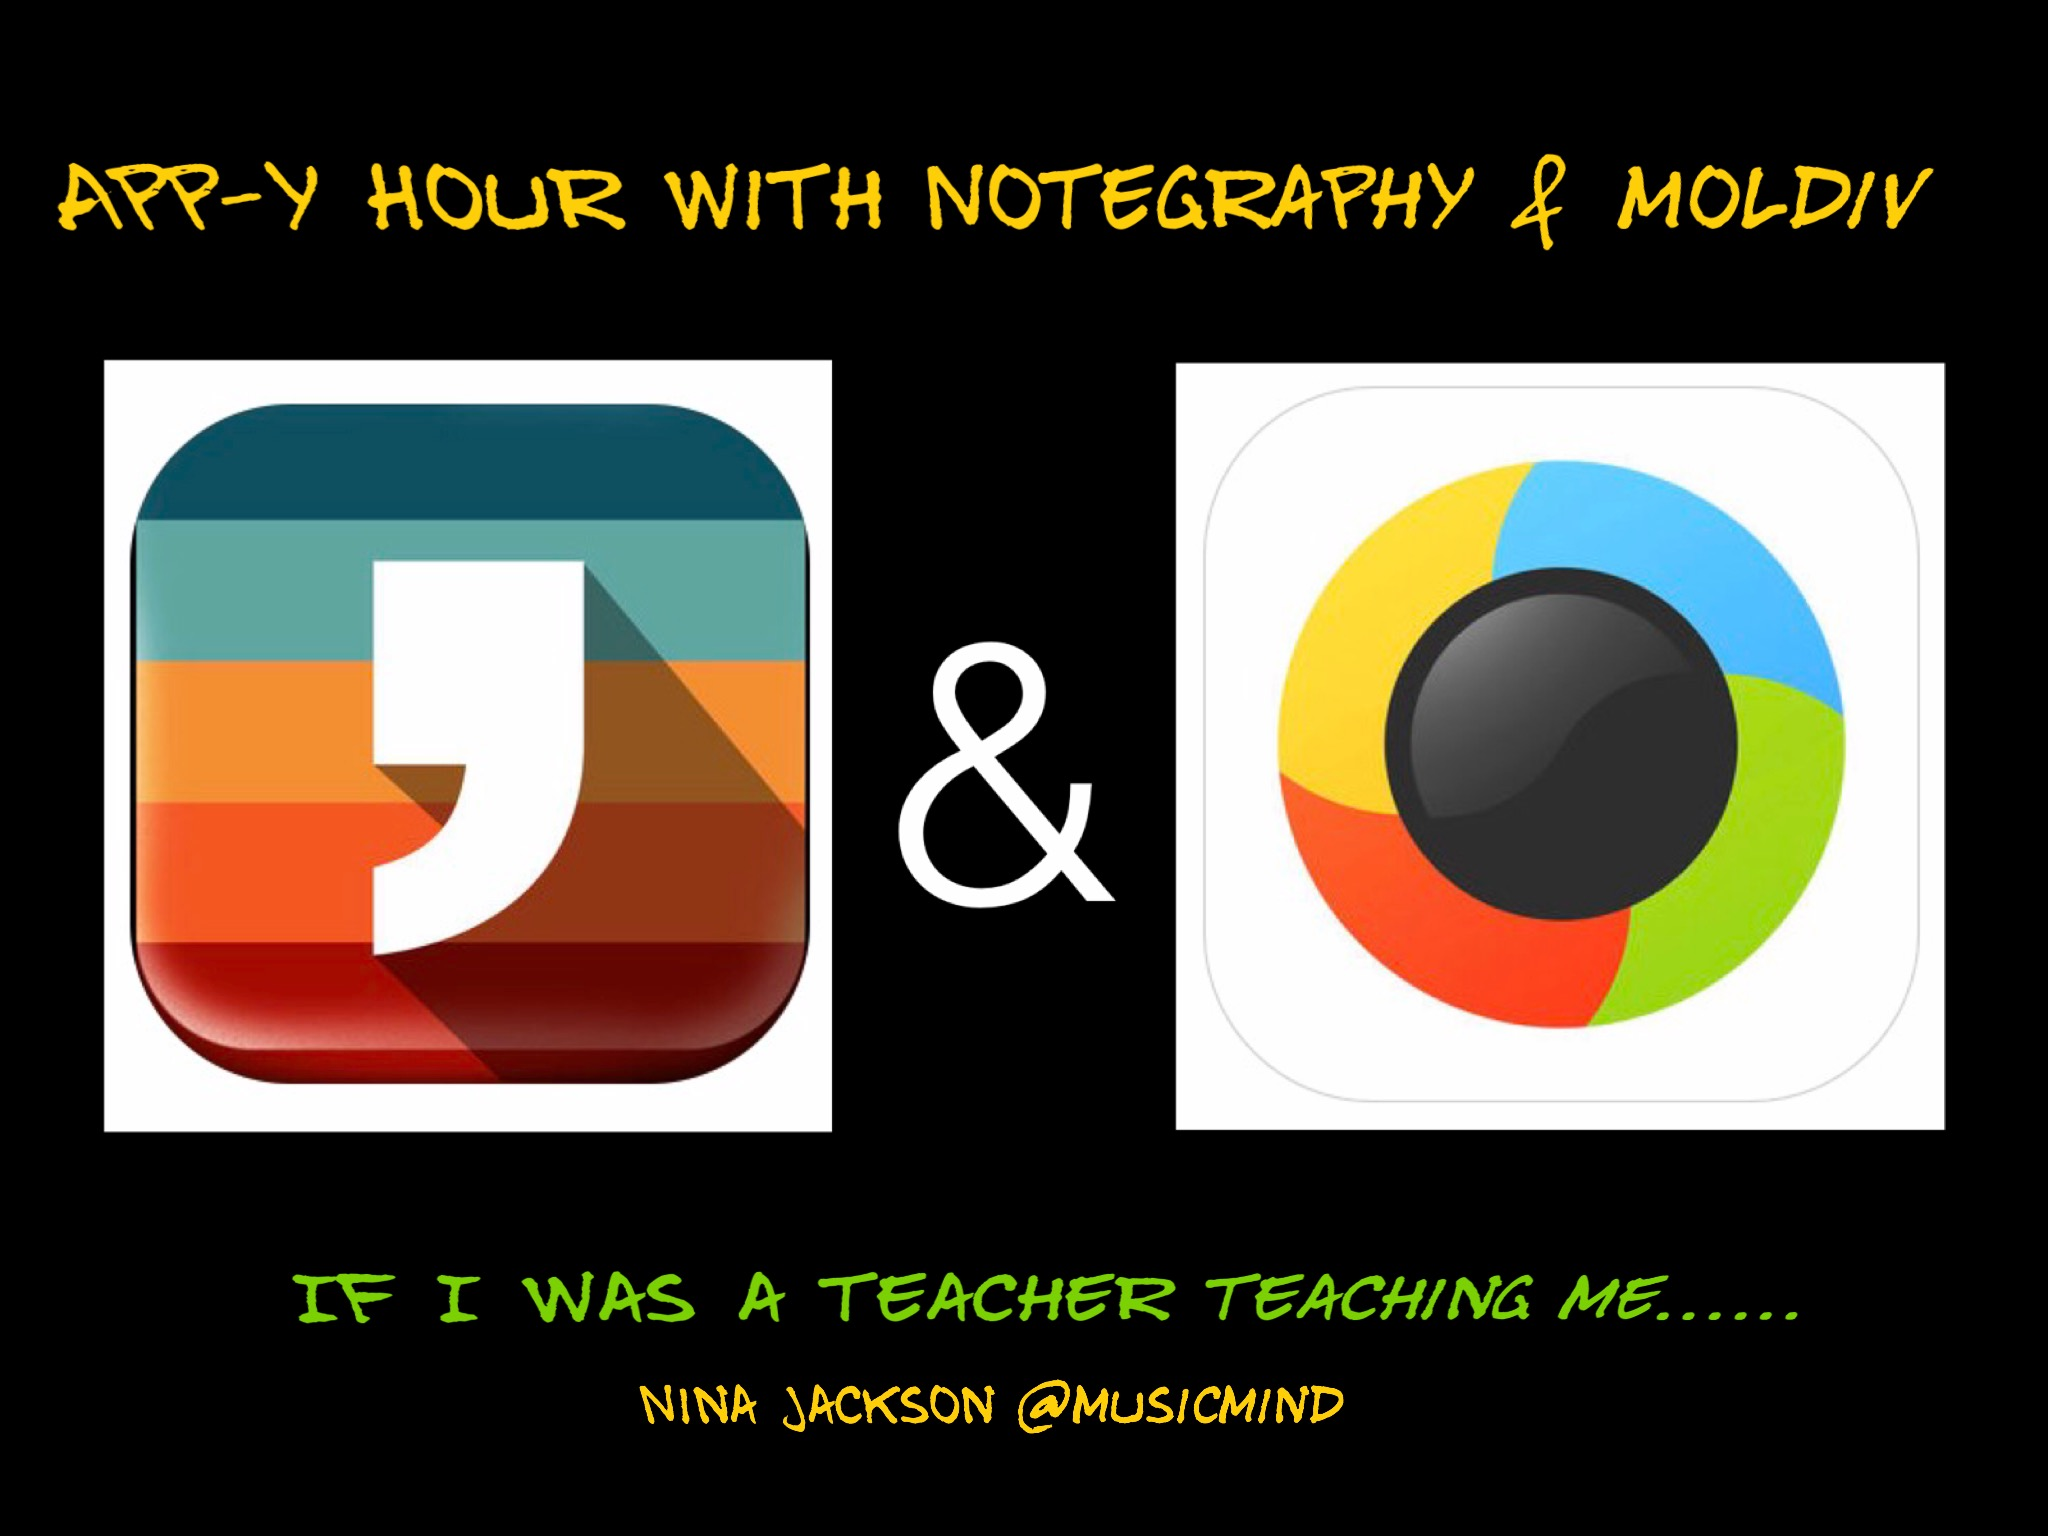 App-y hour with Notegraphy & Moldiv – 'If I were a teacher teaching me….'